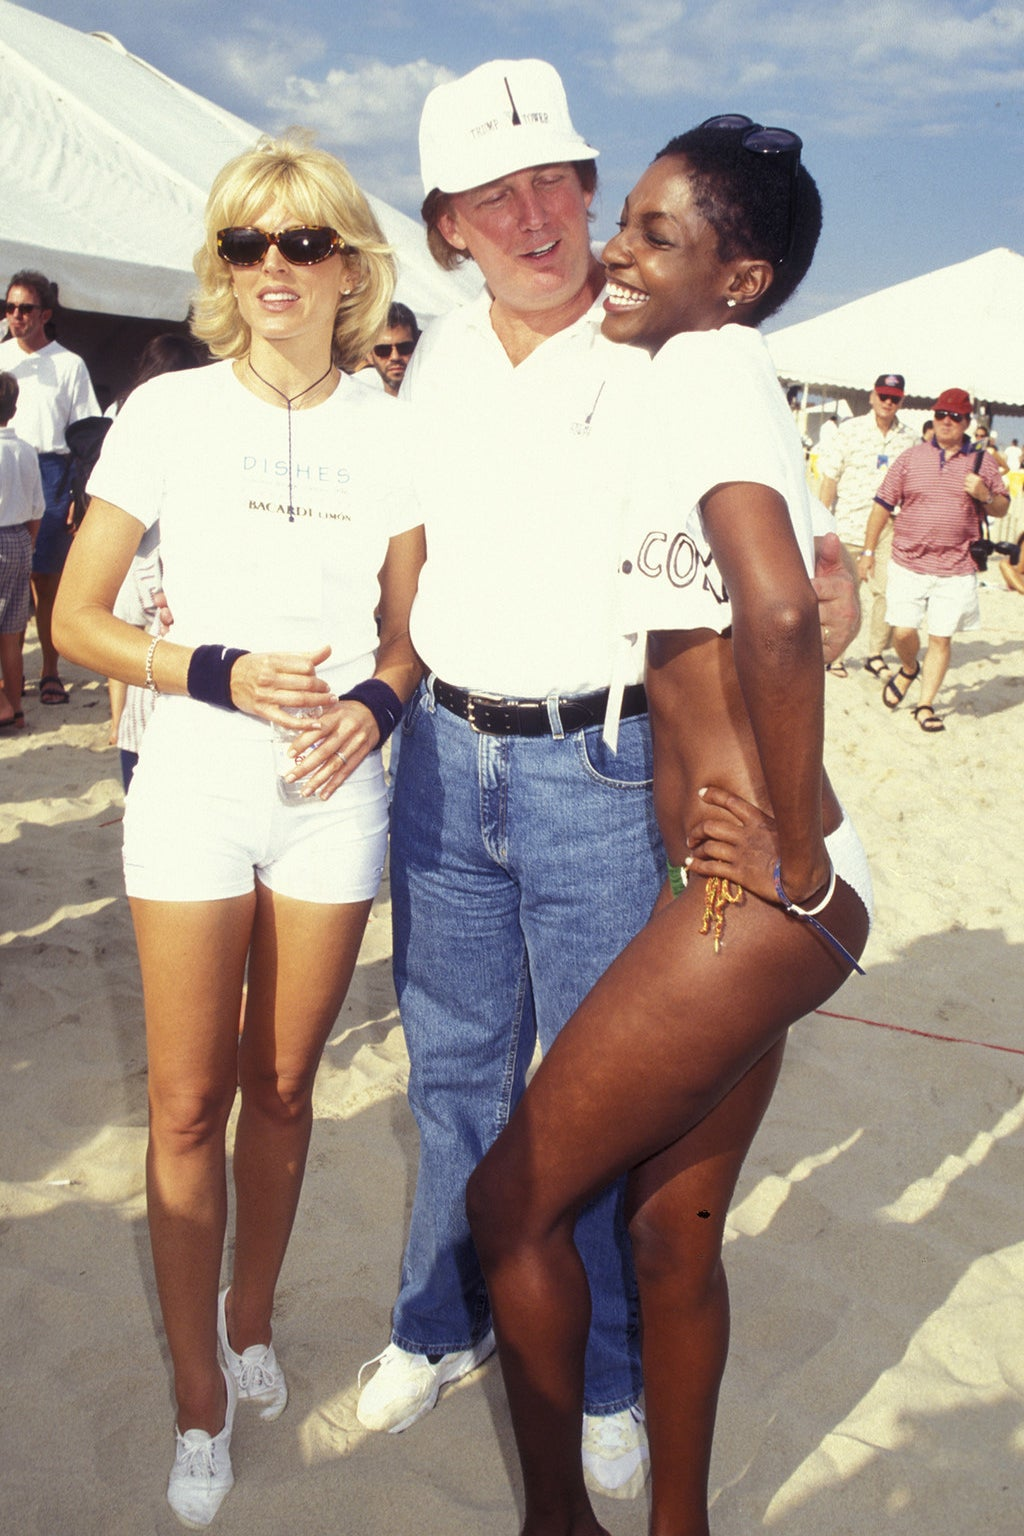 29 Pictures Of Donald Trump With Women That Are Hard To